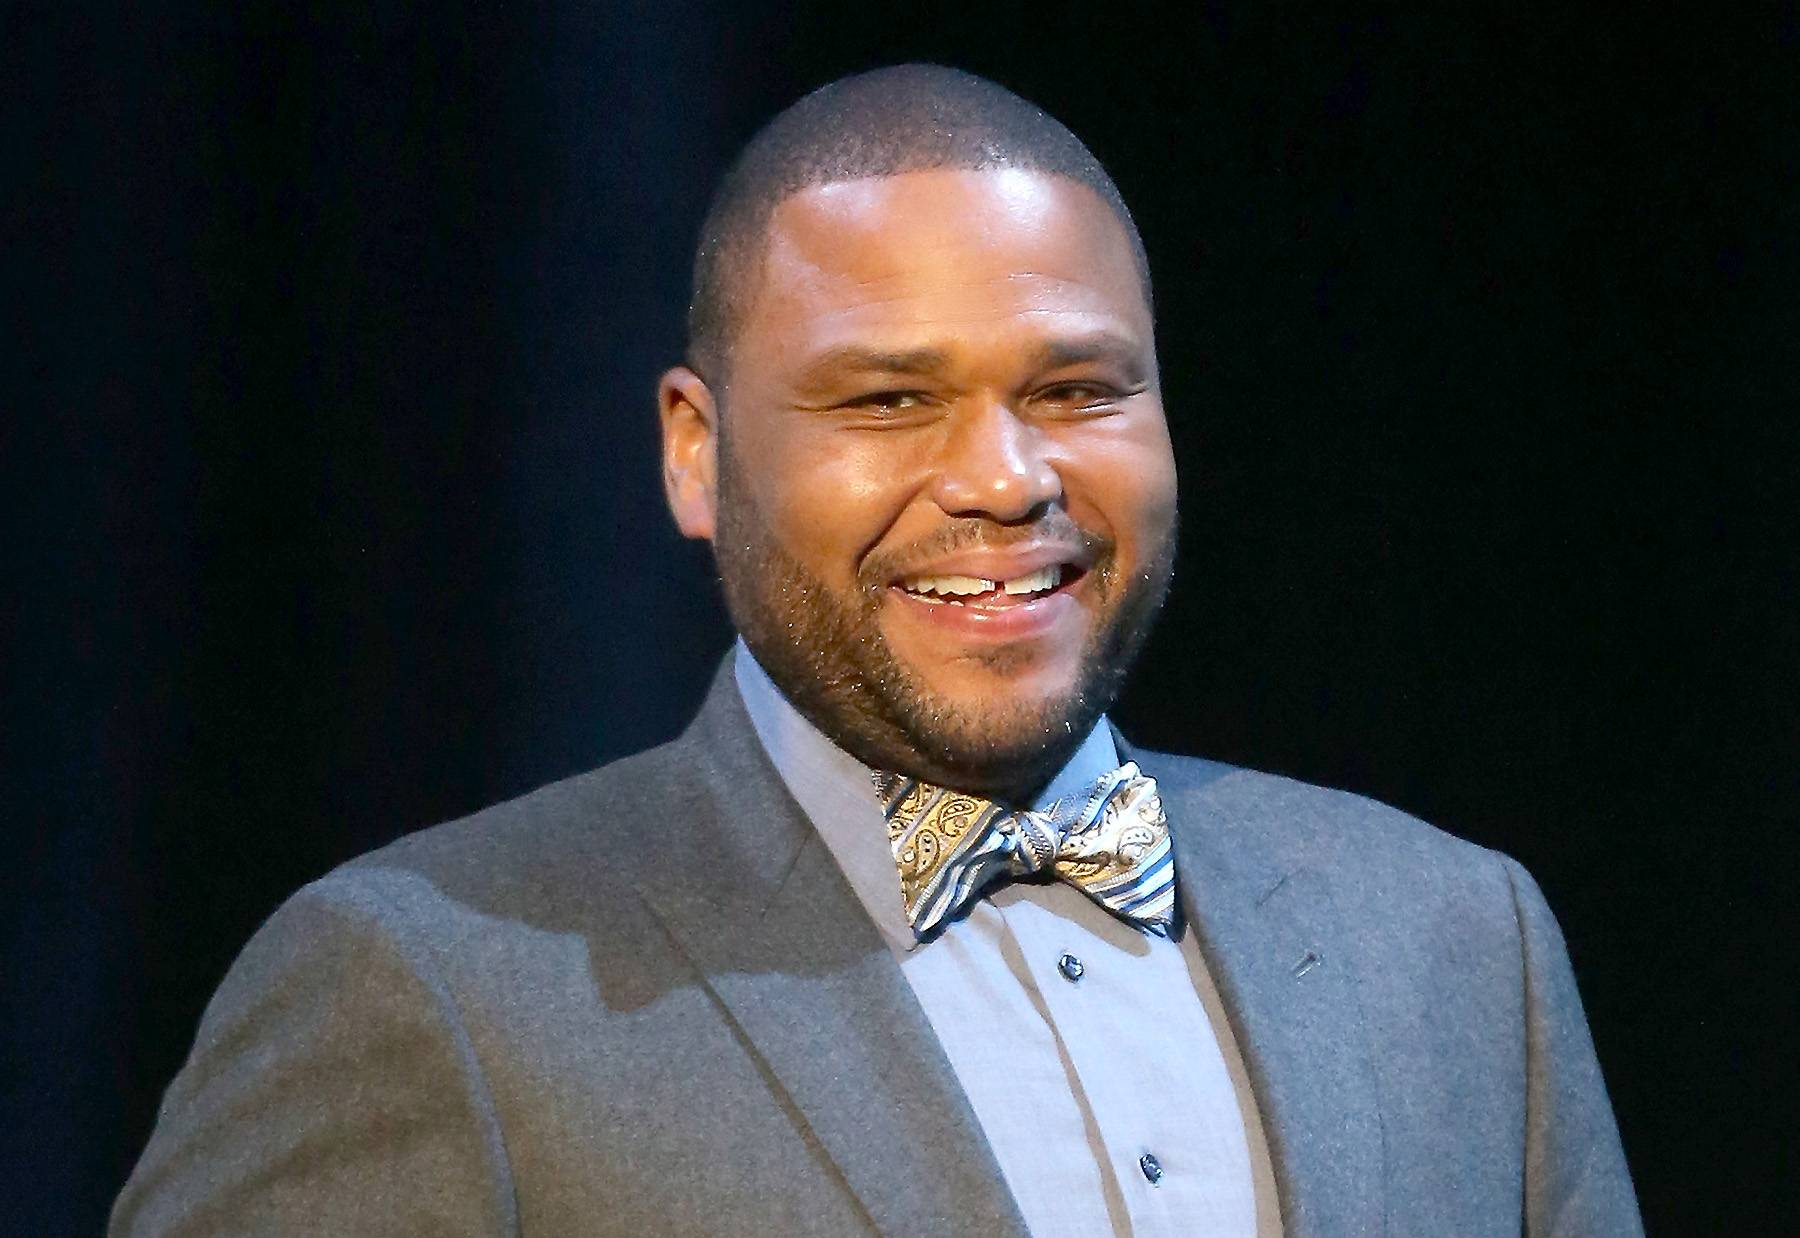 Anthony Anderson, the Host - Comedian and actor Anthony Anderson joins forces with BET and Centric to spearhead hosting duties for the 2013 Soul Train Awards. It all goes down Sunday, December 1 at 8P/7C.(Photo: Frederick M. Brown/Getty Images)